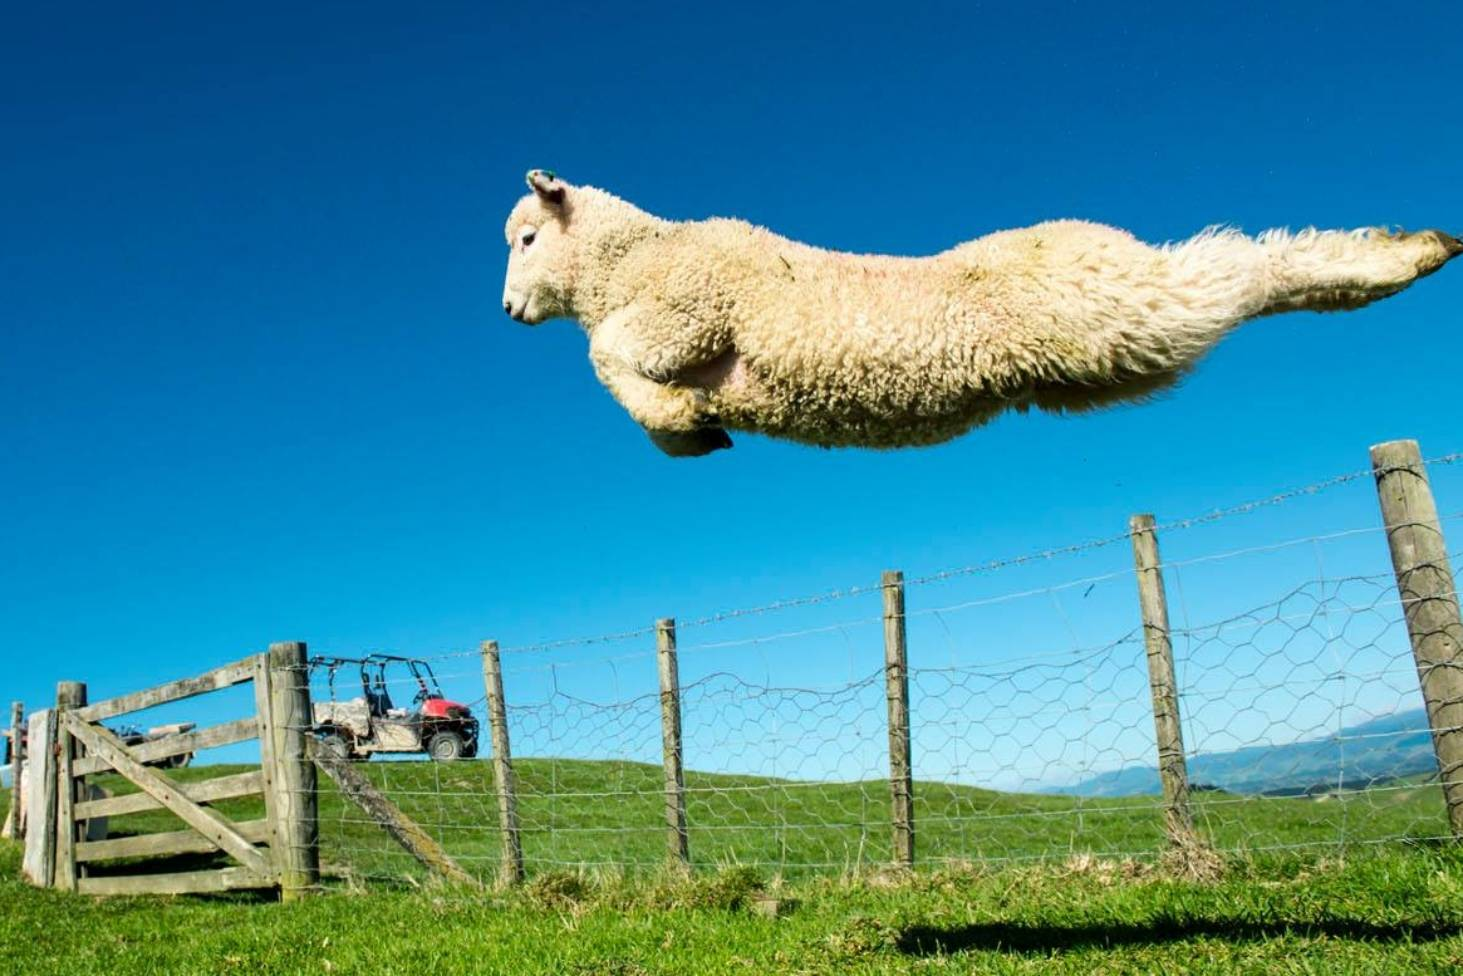 One perfect leap for a lamb | Stuff.co.nz